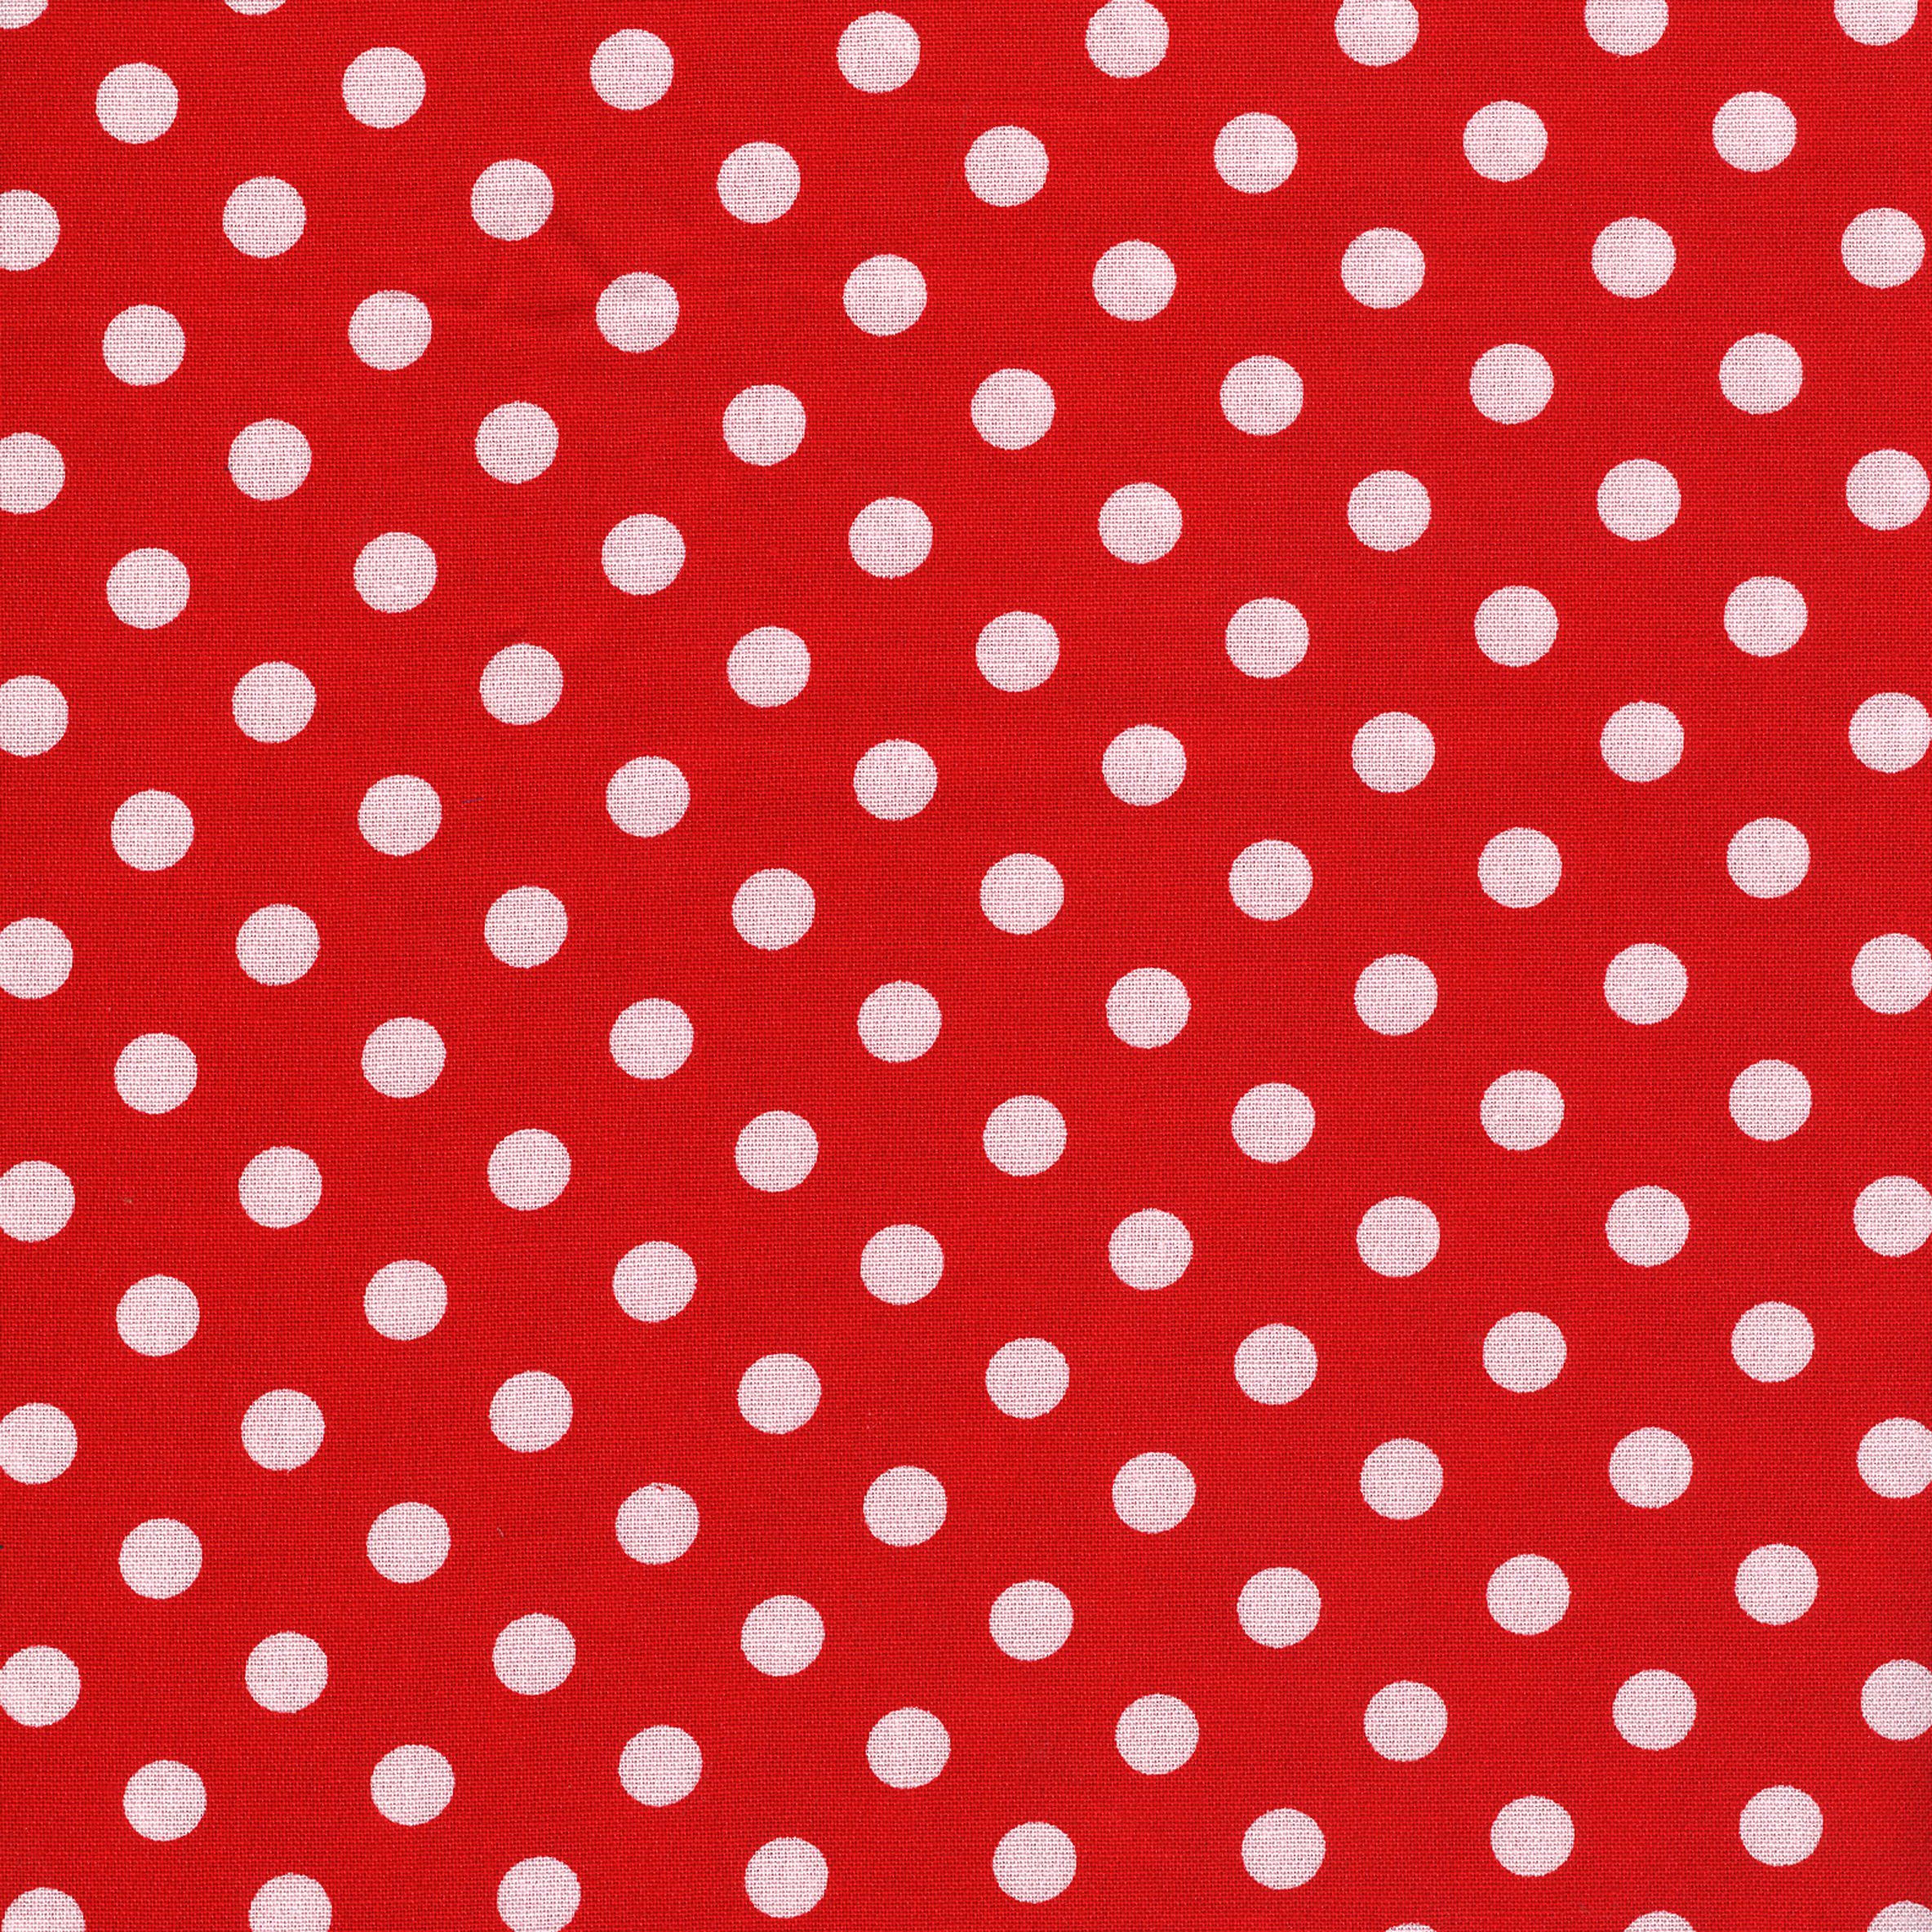 SHASON TEXTILE (3 Yards cut) 100% COTTON PRINT QUILTING FABRIC, RED / WHITE BIG DOTS